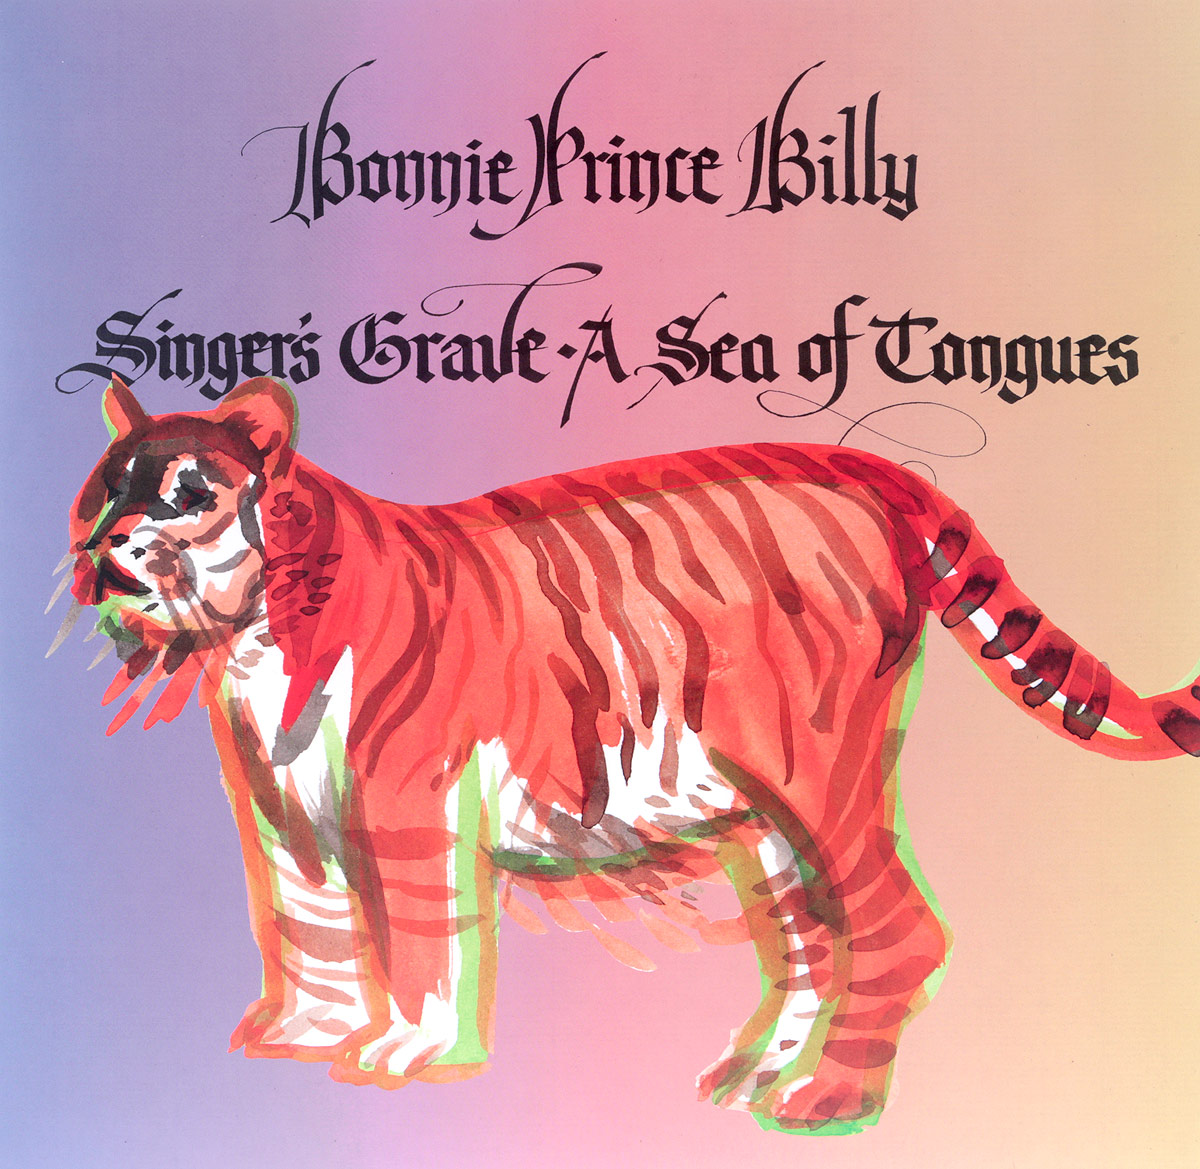 Уилл Олдхэм Bonnie Prince Billy. Singer'S Grave A Sea Of Tongues (2 LP) sea within sea within sea within 2 lp 2 cd